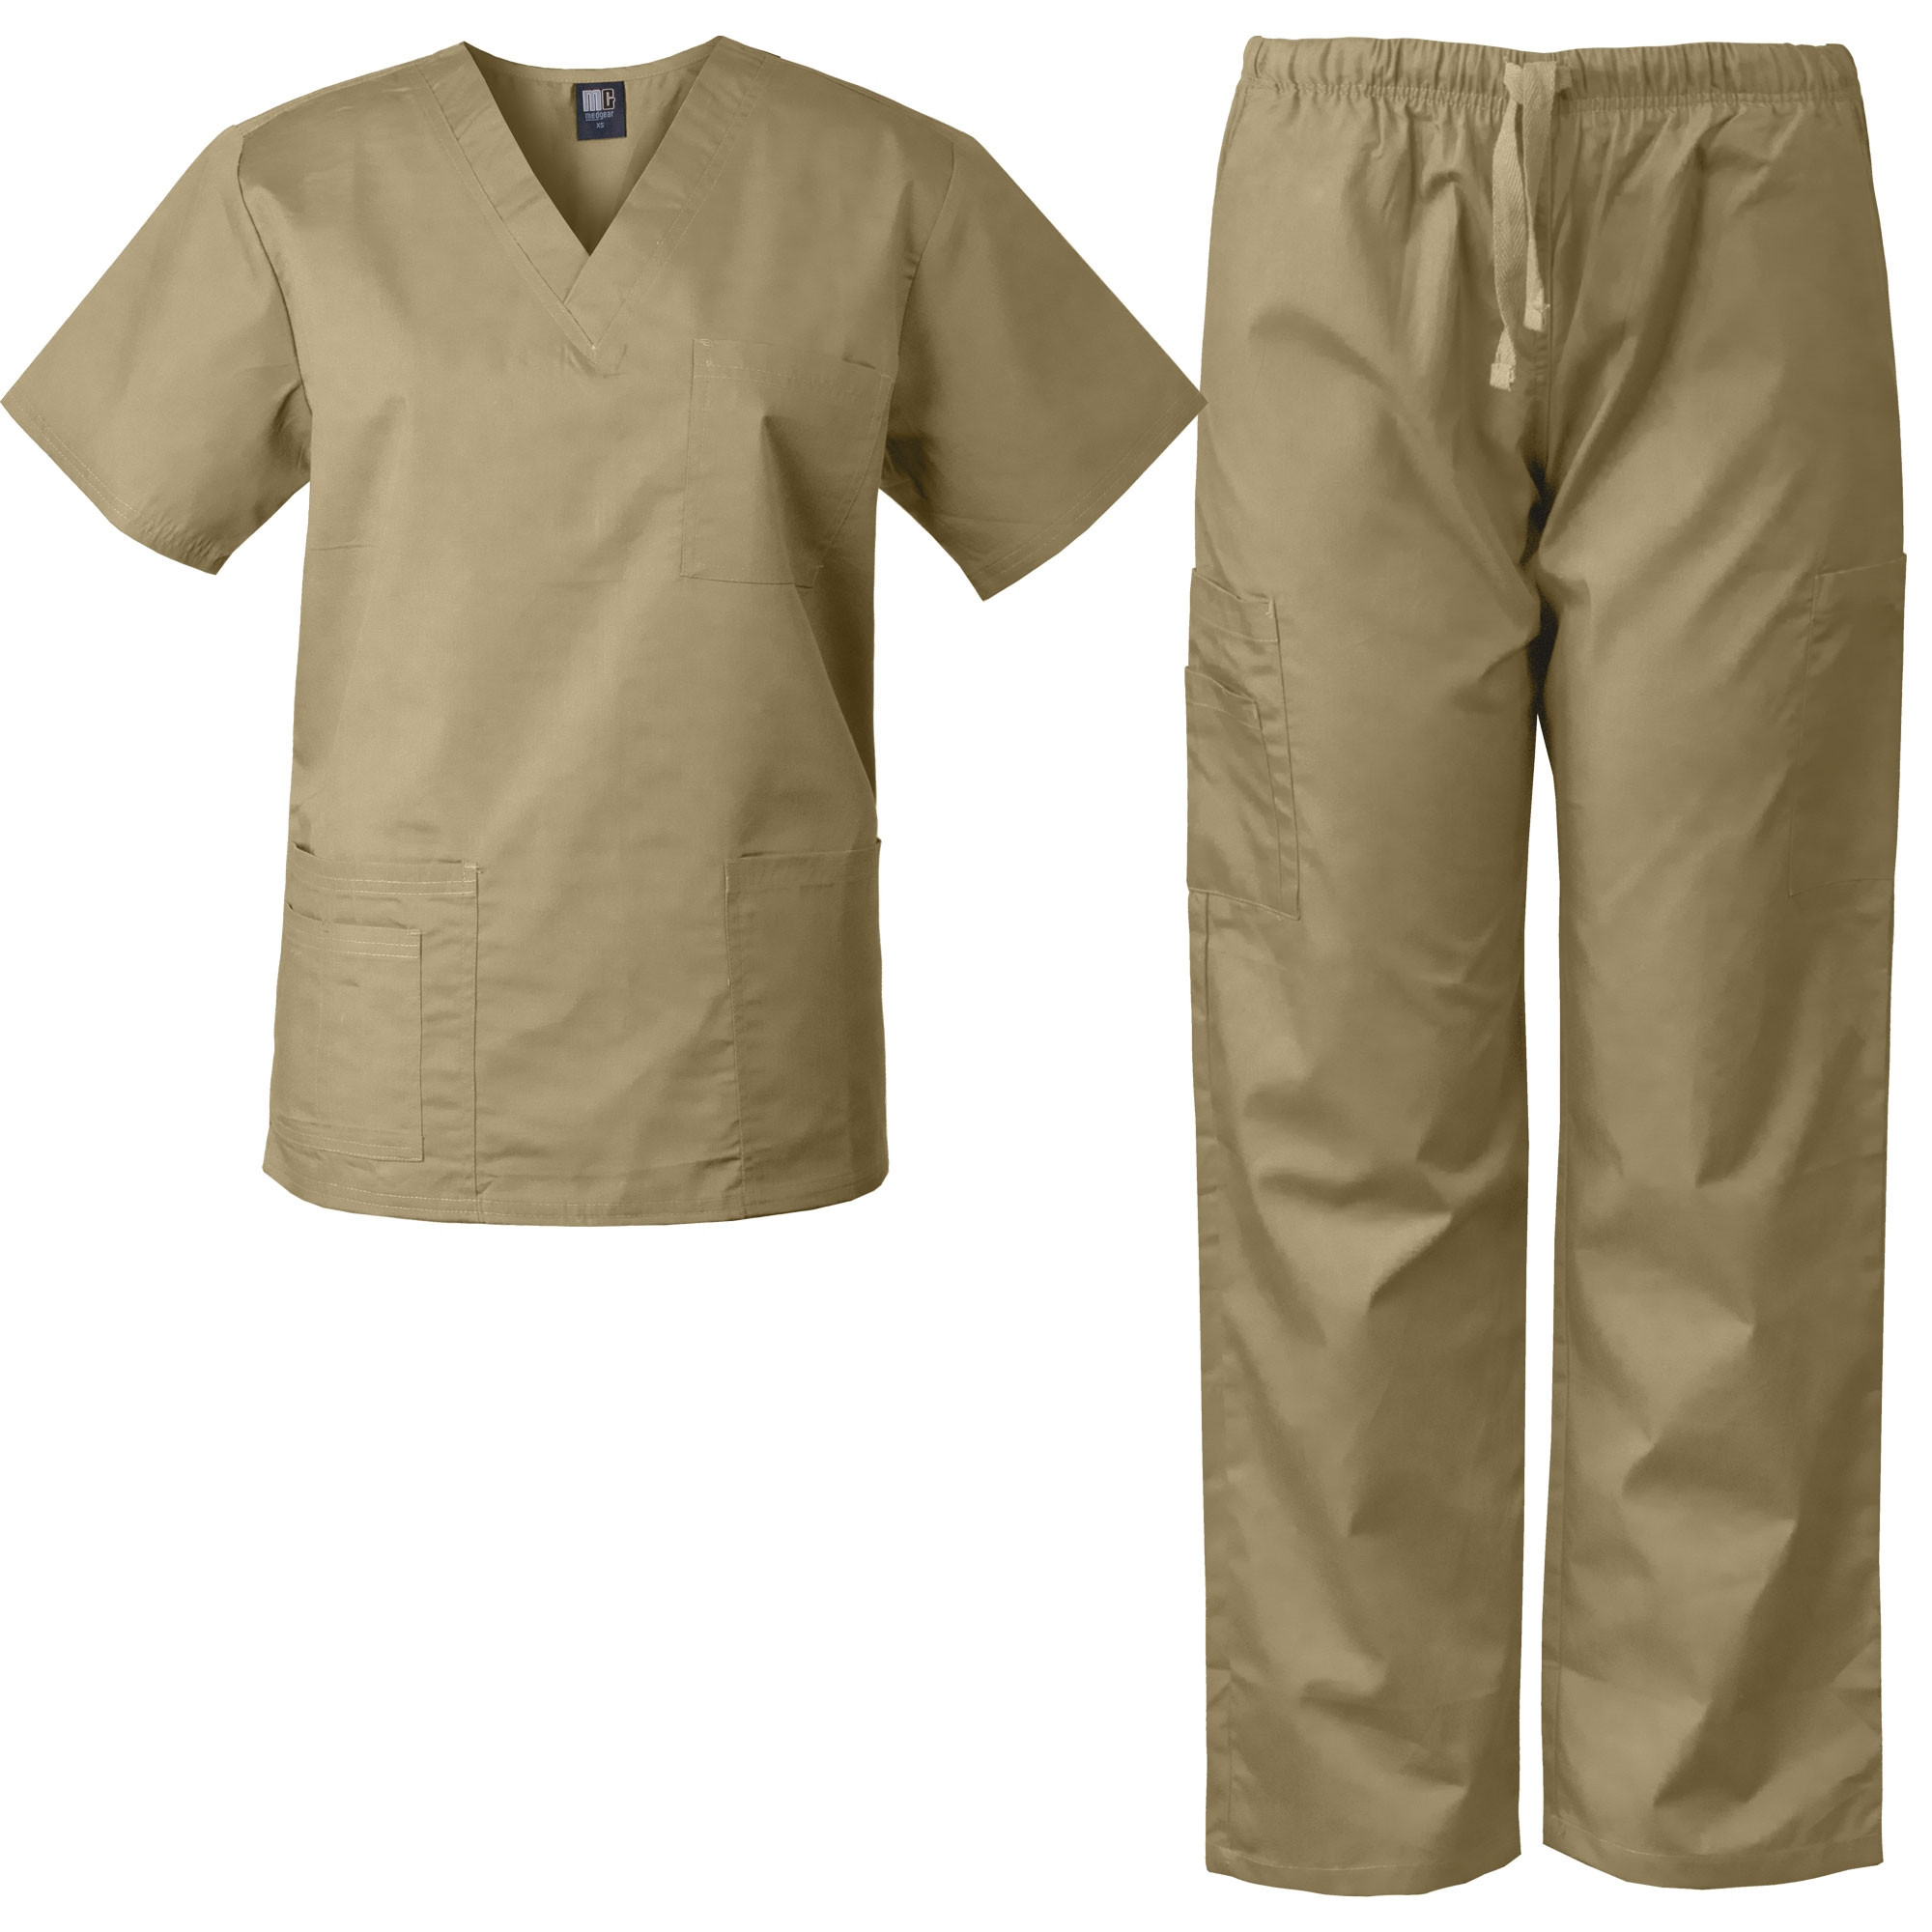 a5b5c501549 MedGear Scrubs Set Multi-Pocket Top & Pants, Eversoft Fabric, Unisex ...